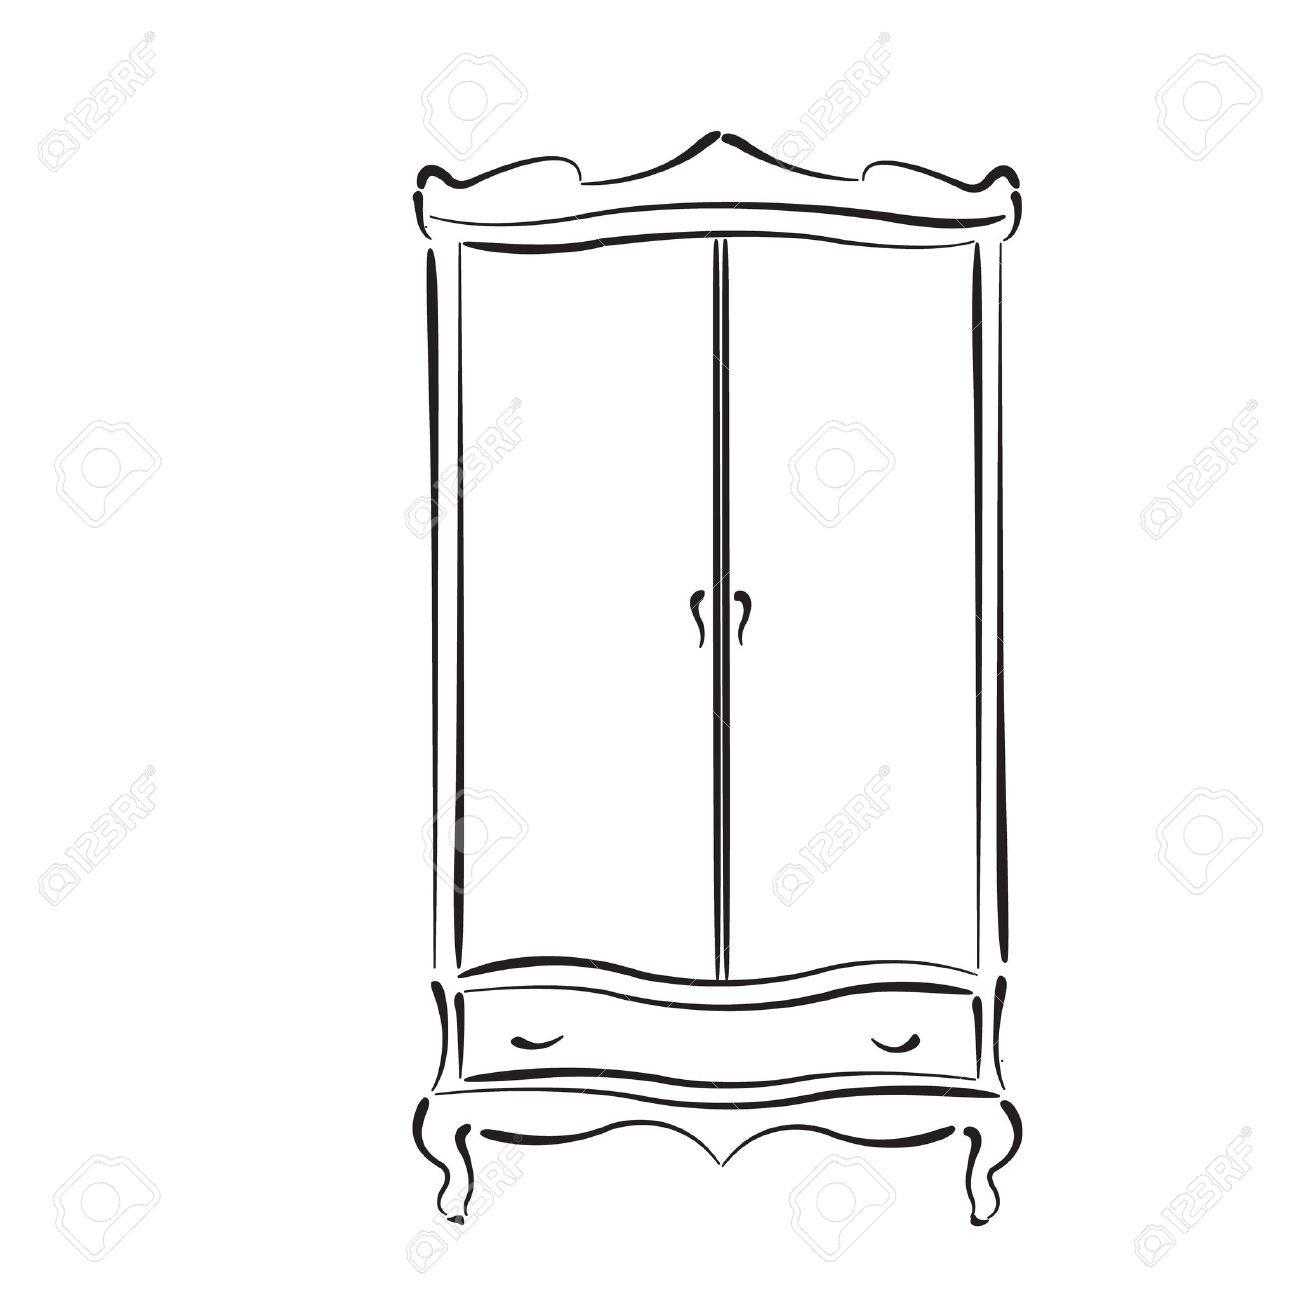 Wardrobe clipart black and white  Sketched Vintage Wardrobe Isolated On White Background. Vintage ...